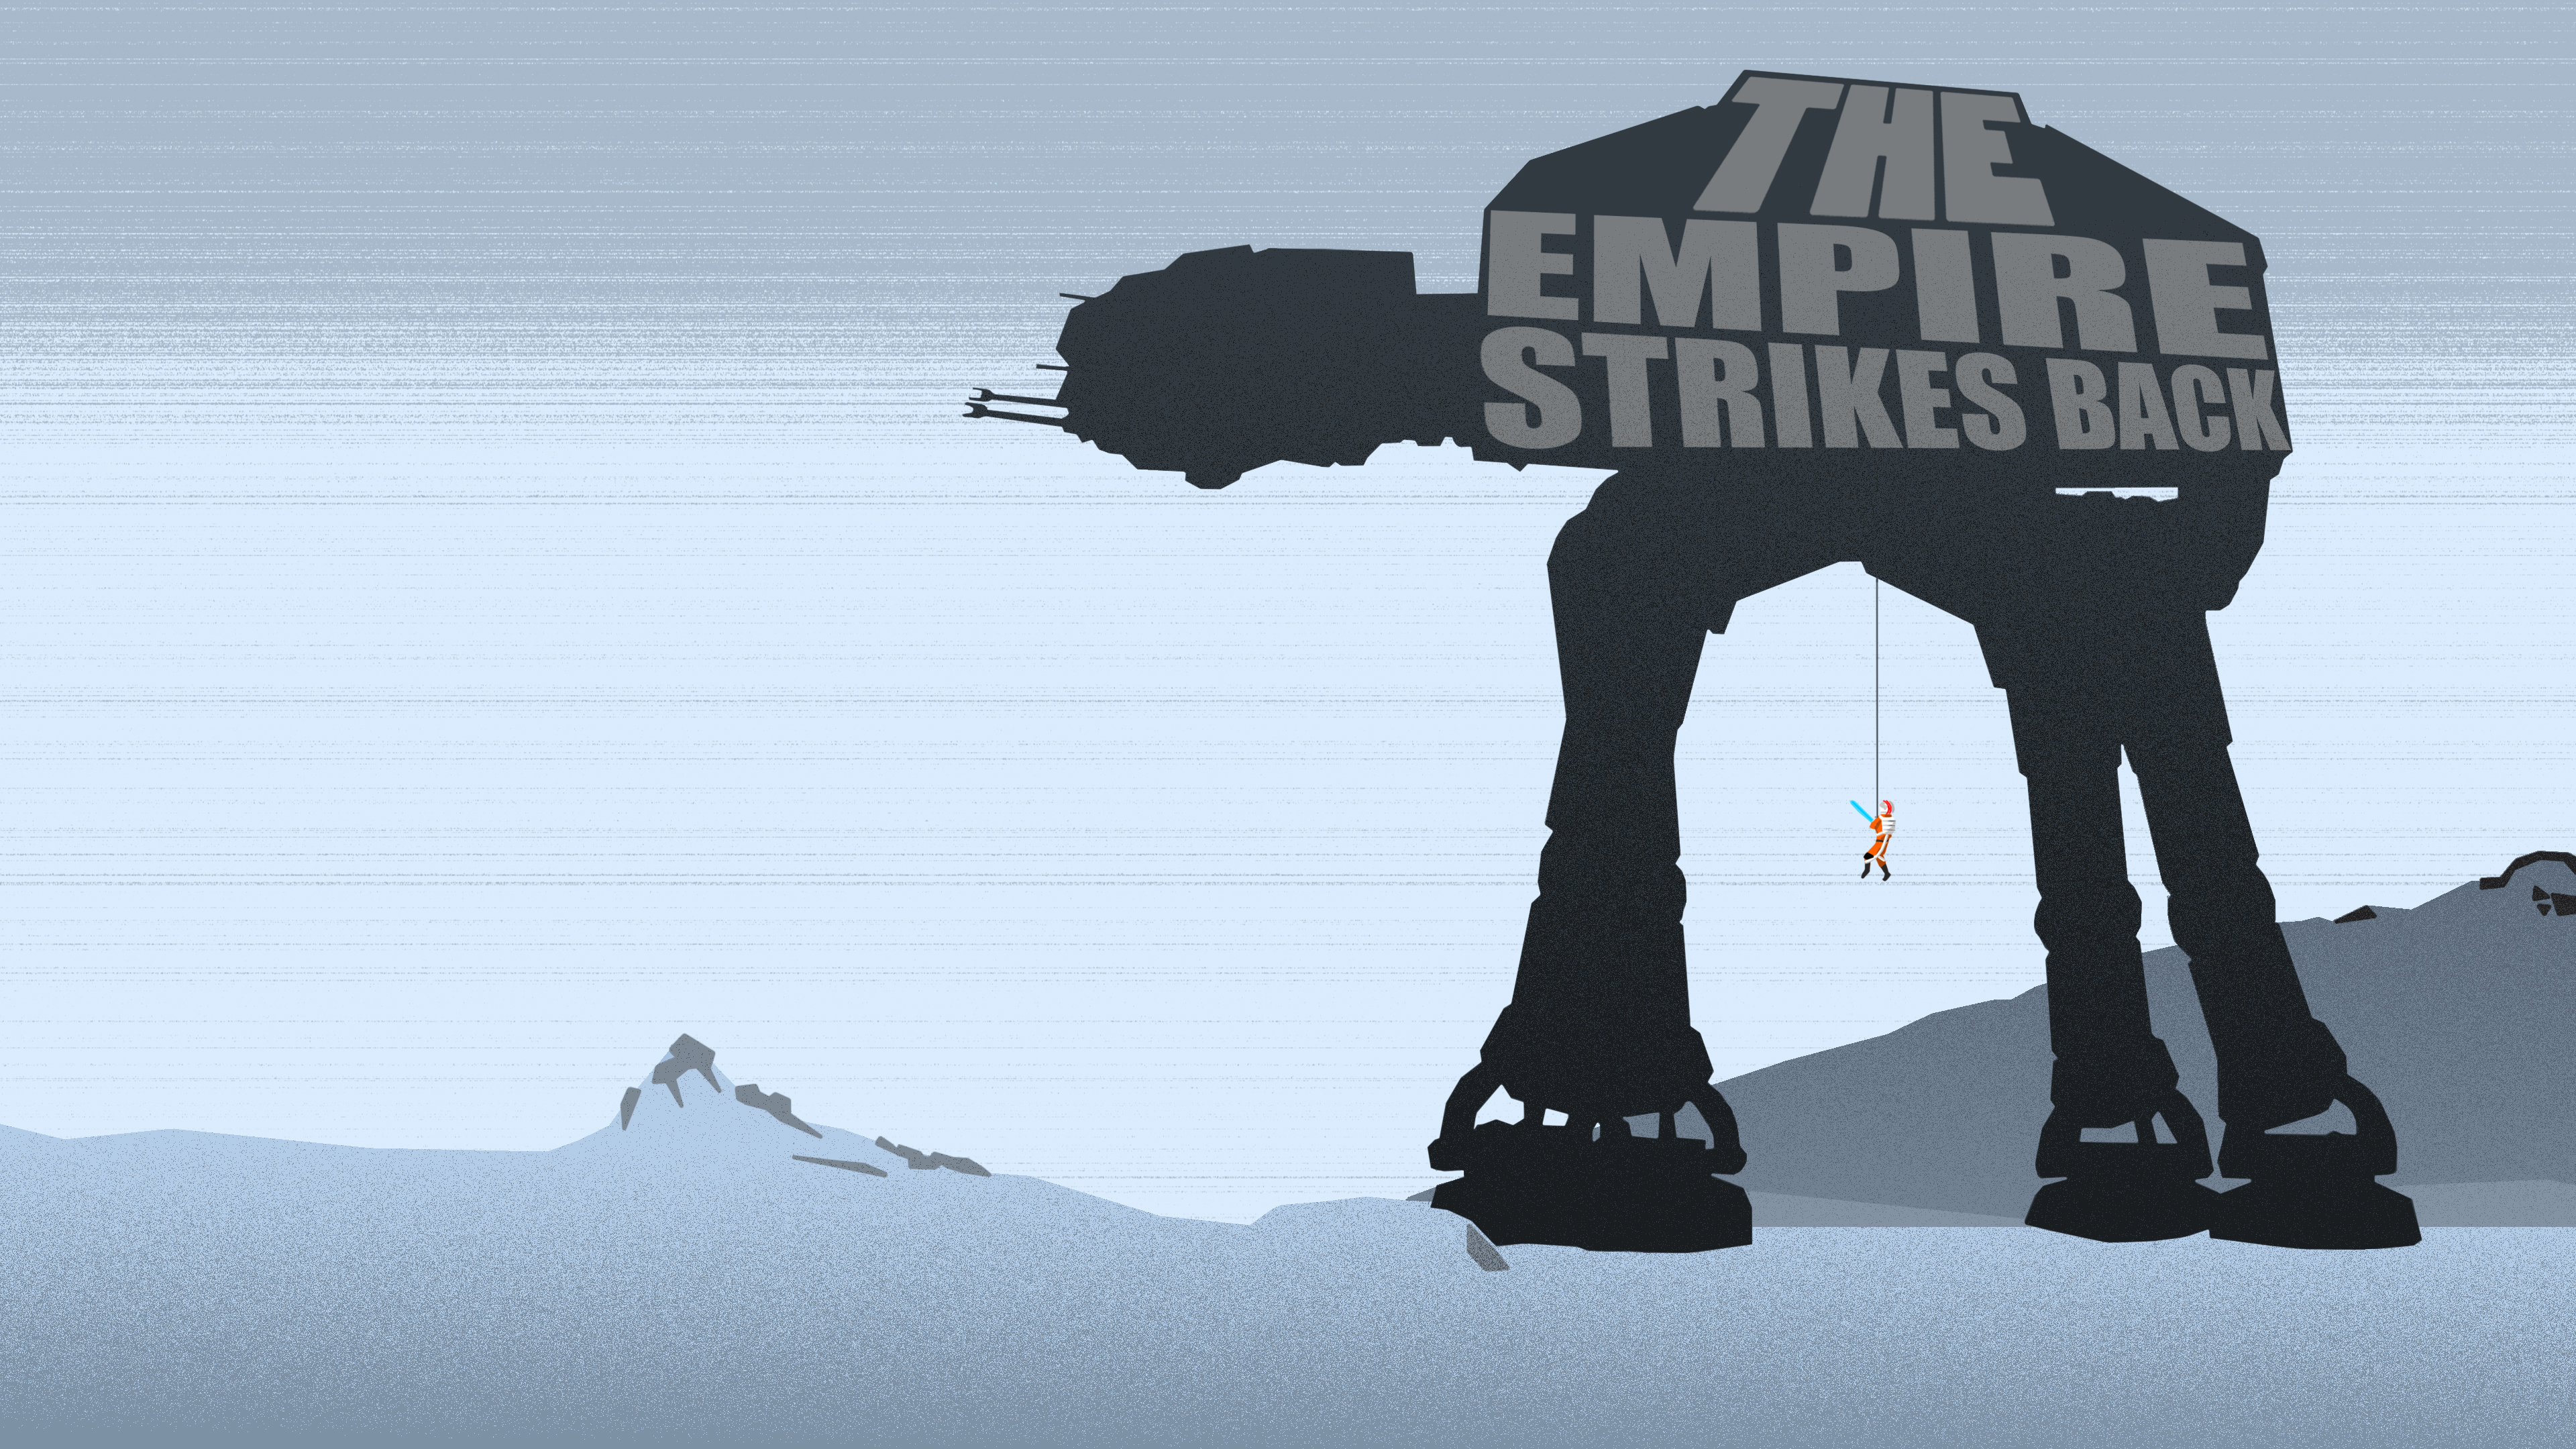 The Empire Strikes Back Wallpaper [Text] By Zim1112 On